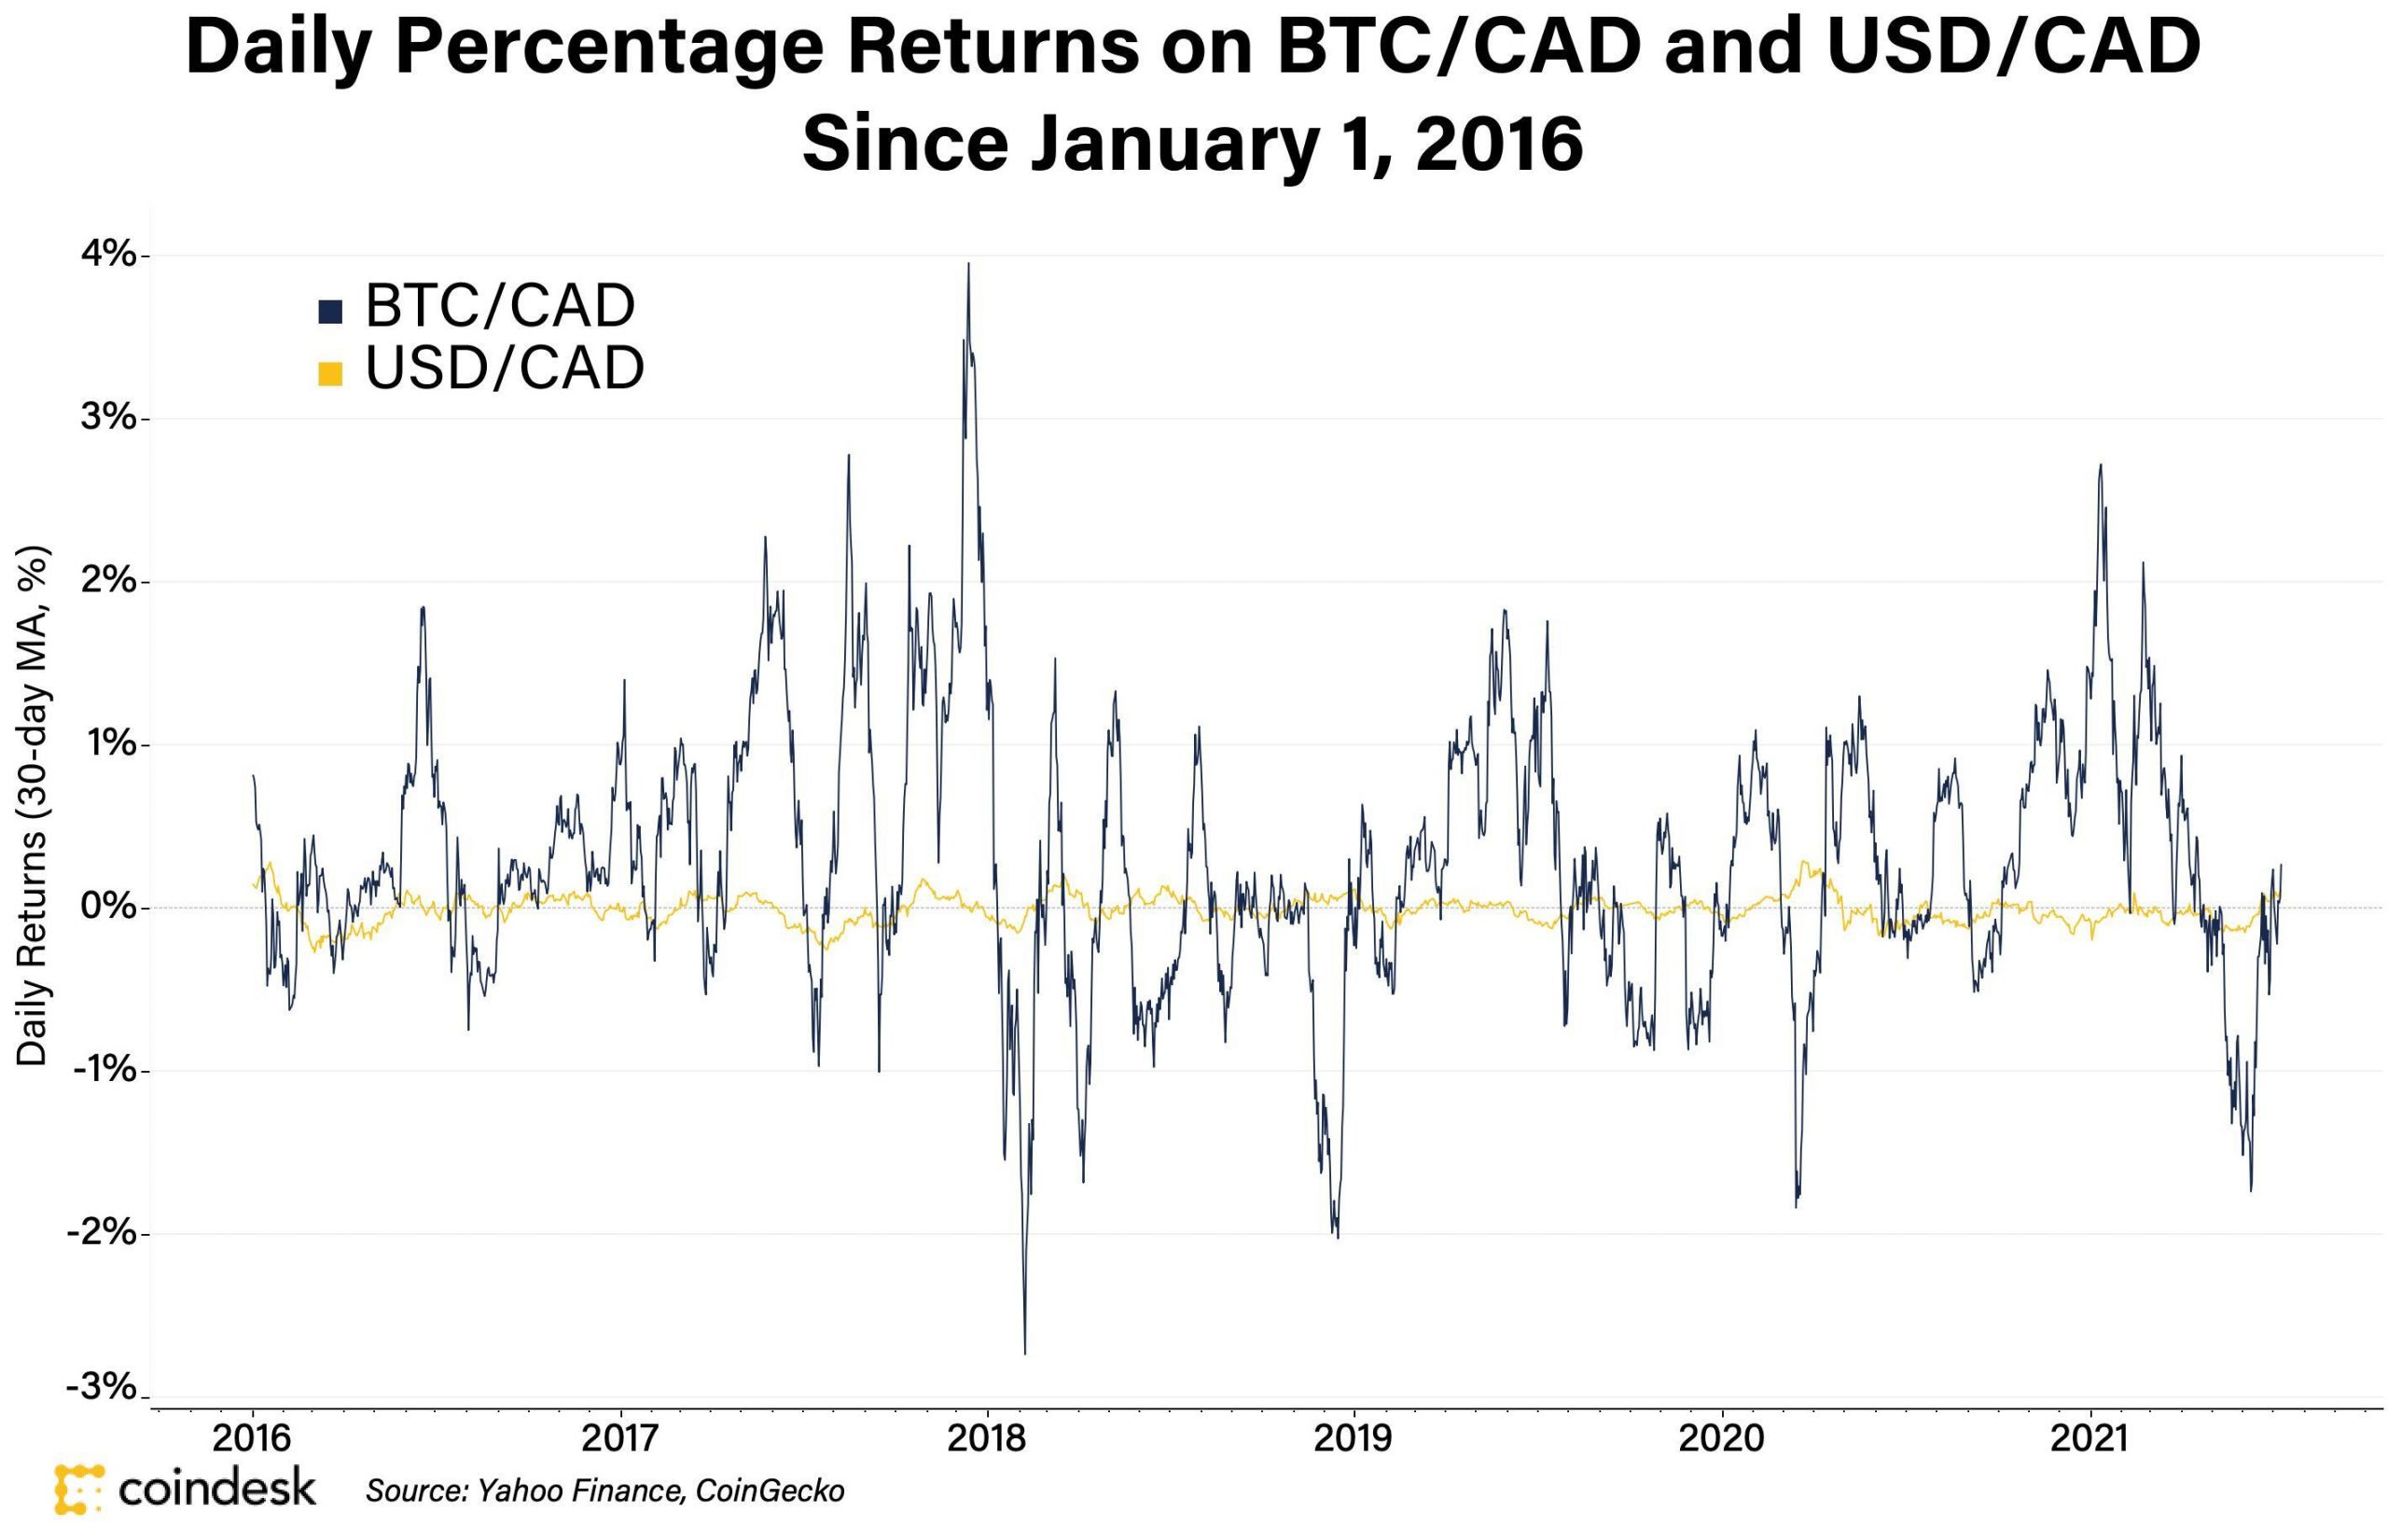 Bitcoin volatility versus the U.S dollar (both trading against the Canadian Dollar.)